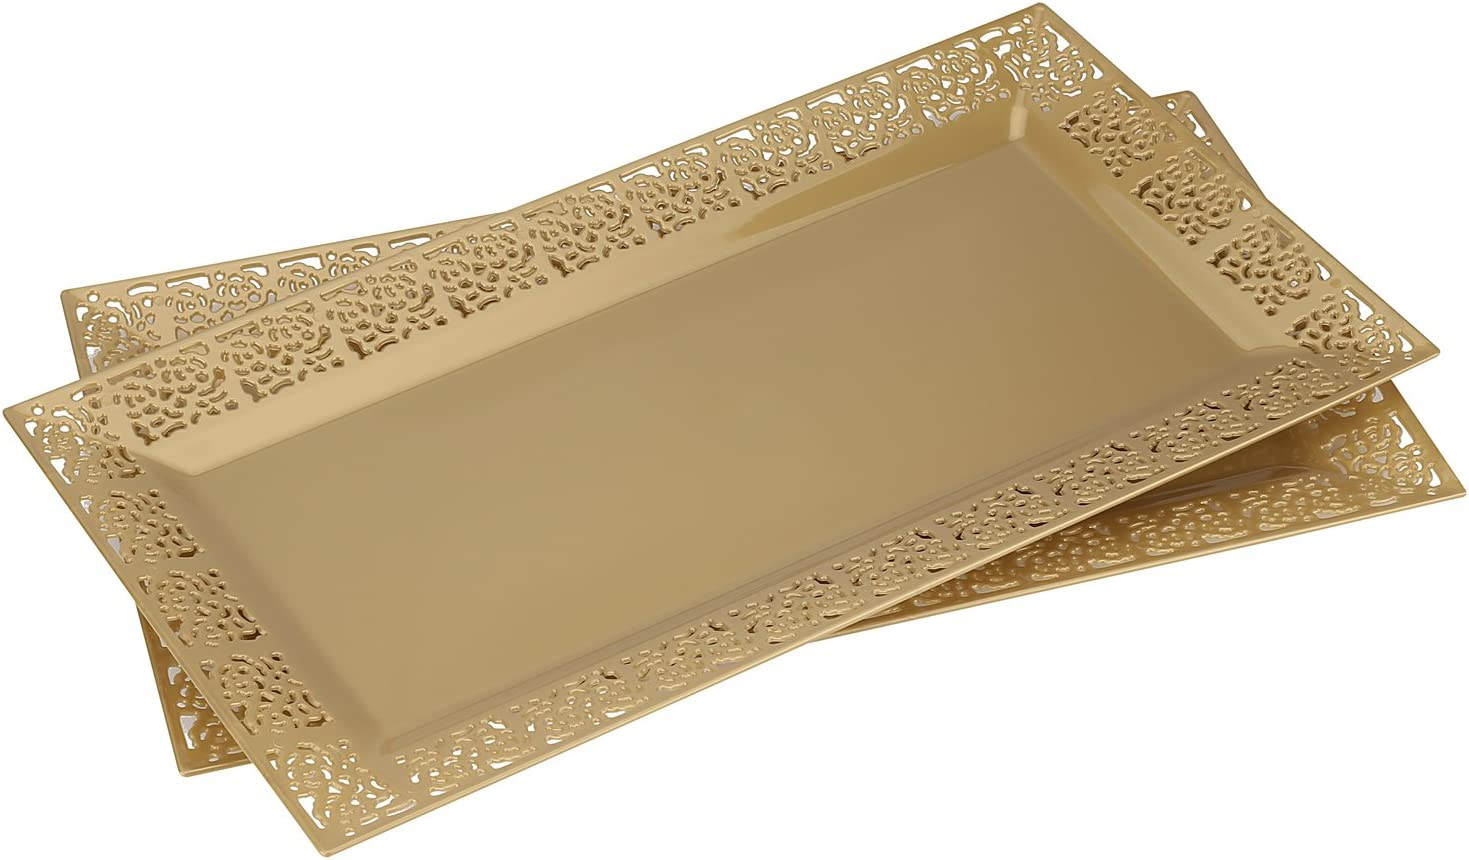 "Silver Spoons and More lace Rim 14"" x 7.5"" Heavyweight Plastic Set of 2 Serving Trays, gold"